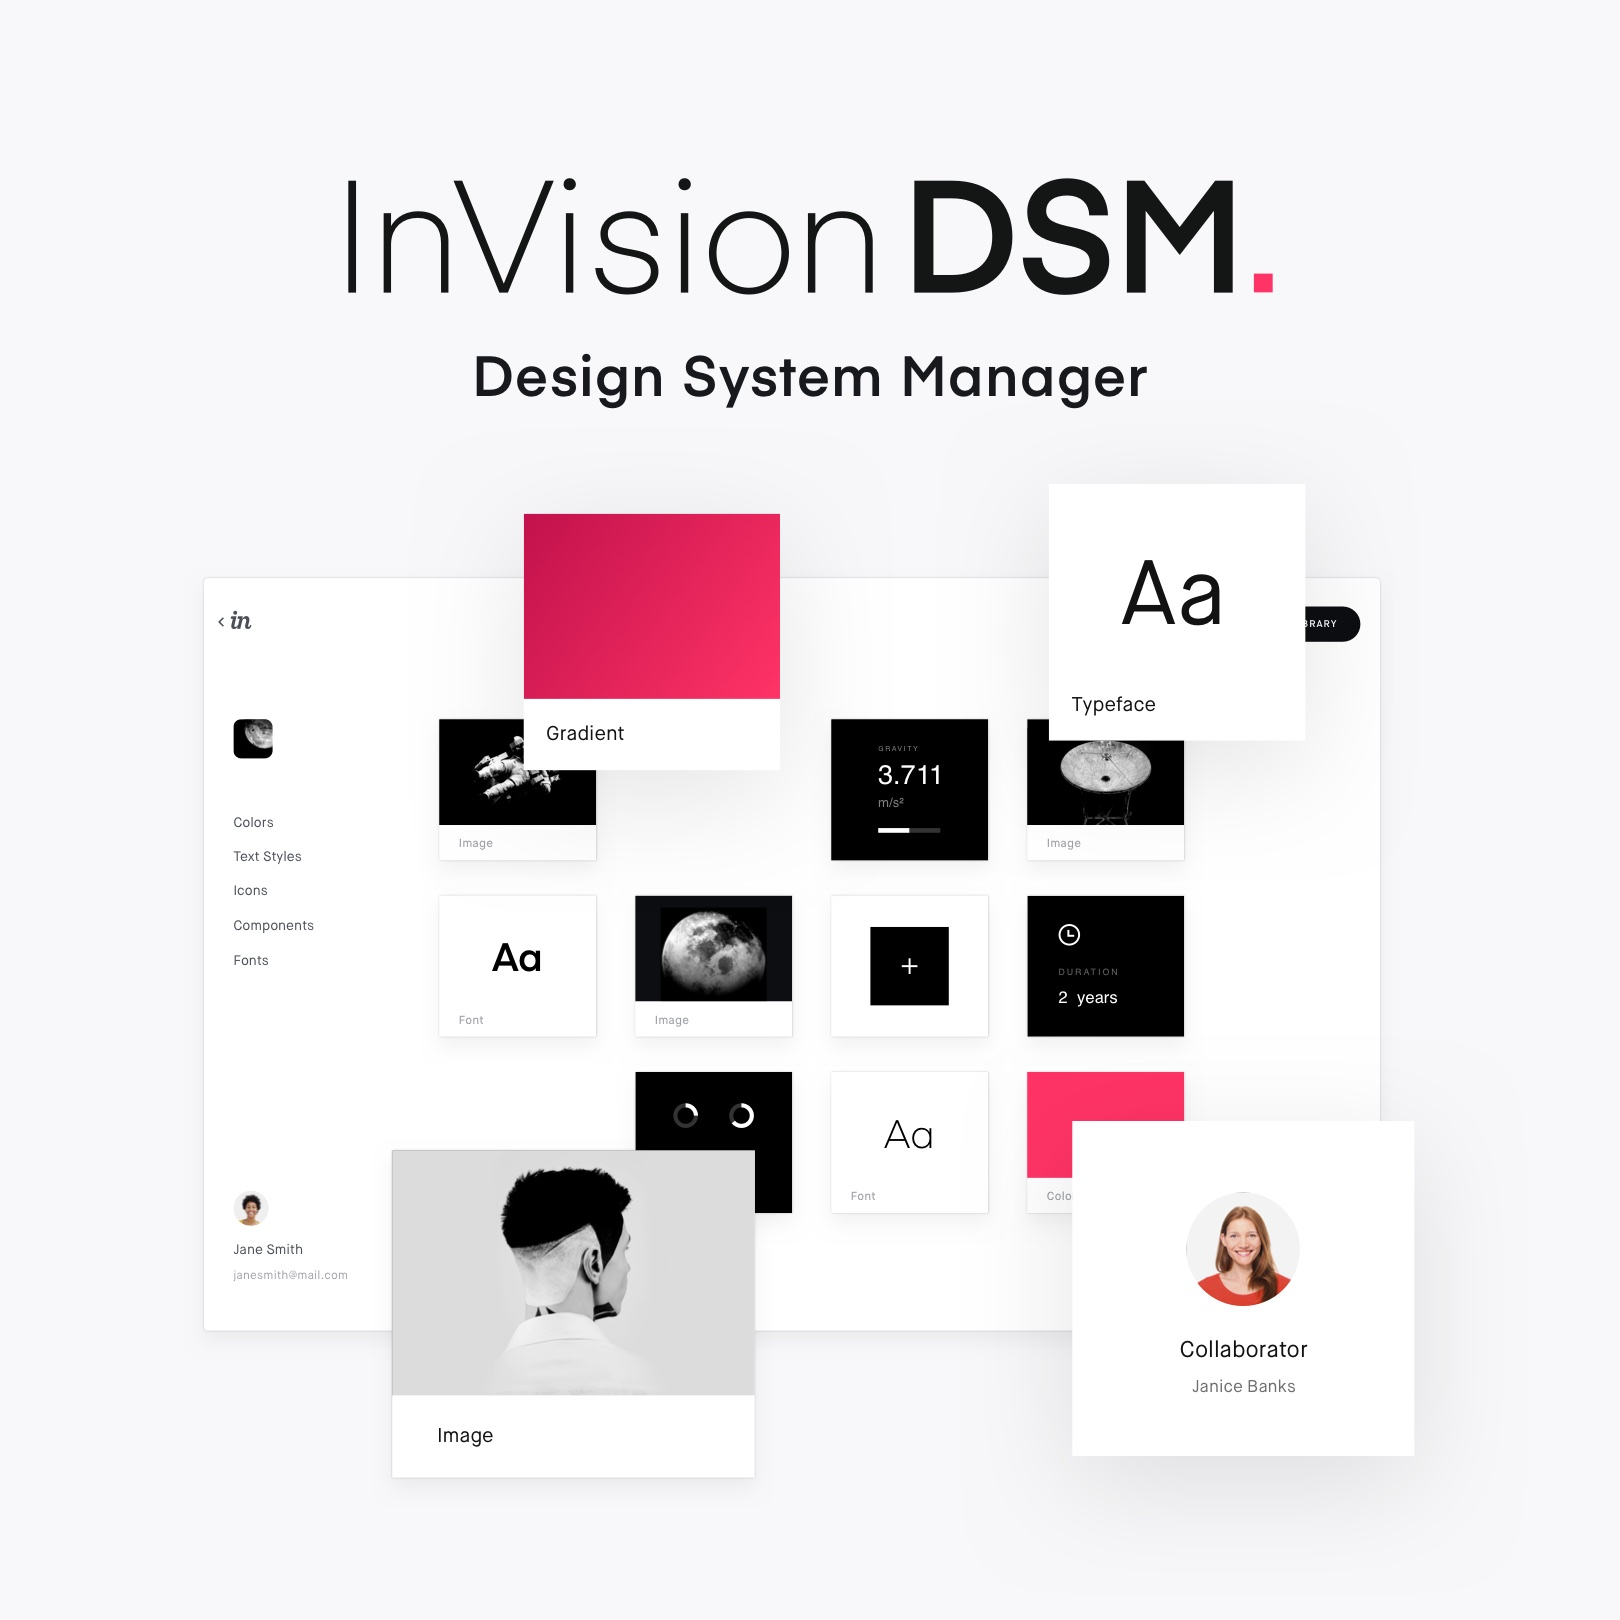 Insidedesign tips ad dsm